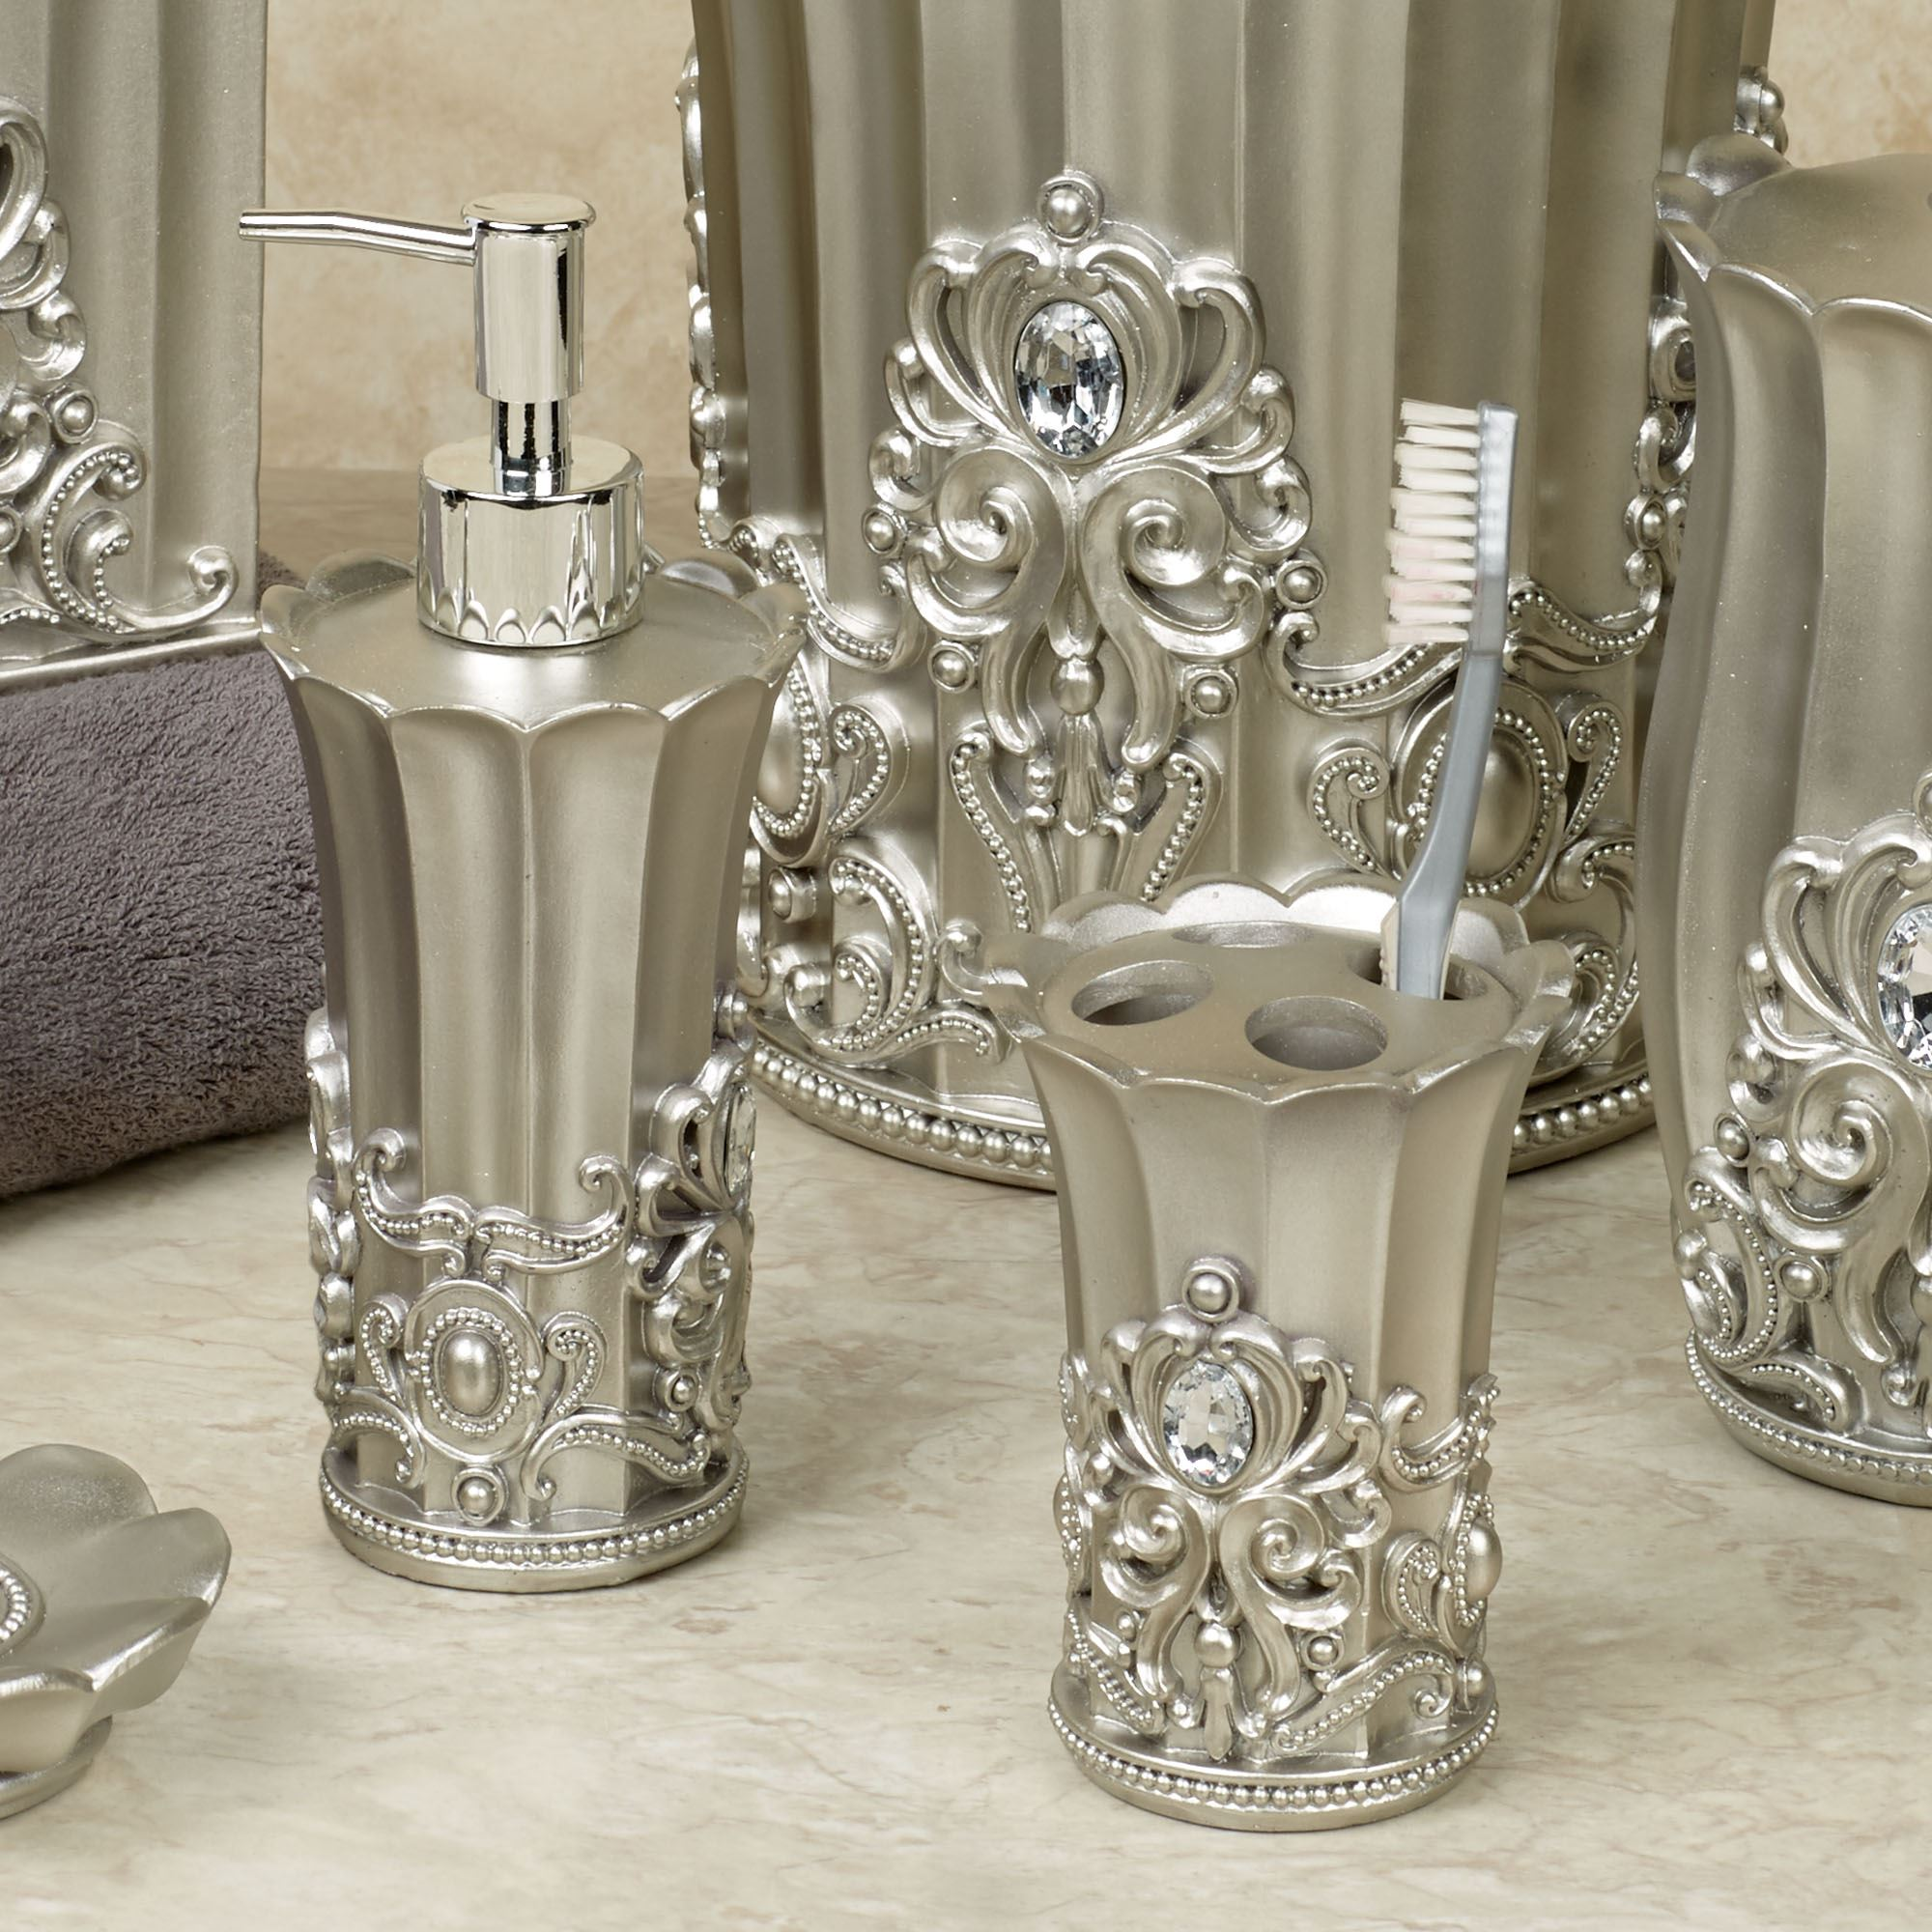 crystal bathroom accessories. click to expand crystal bathroom accessories m